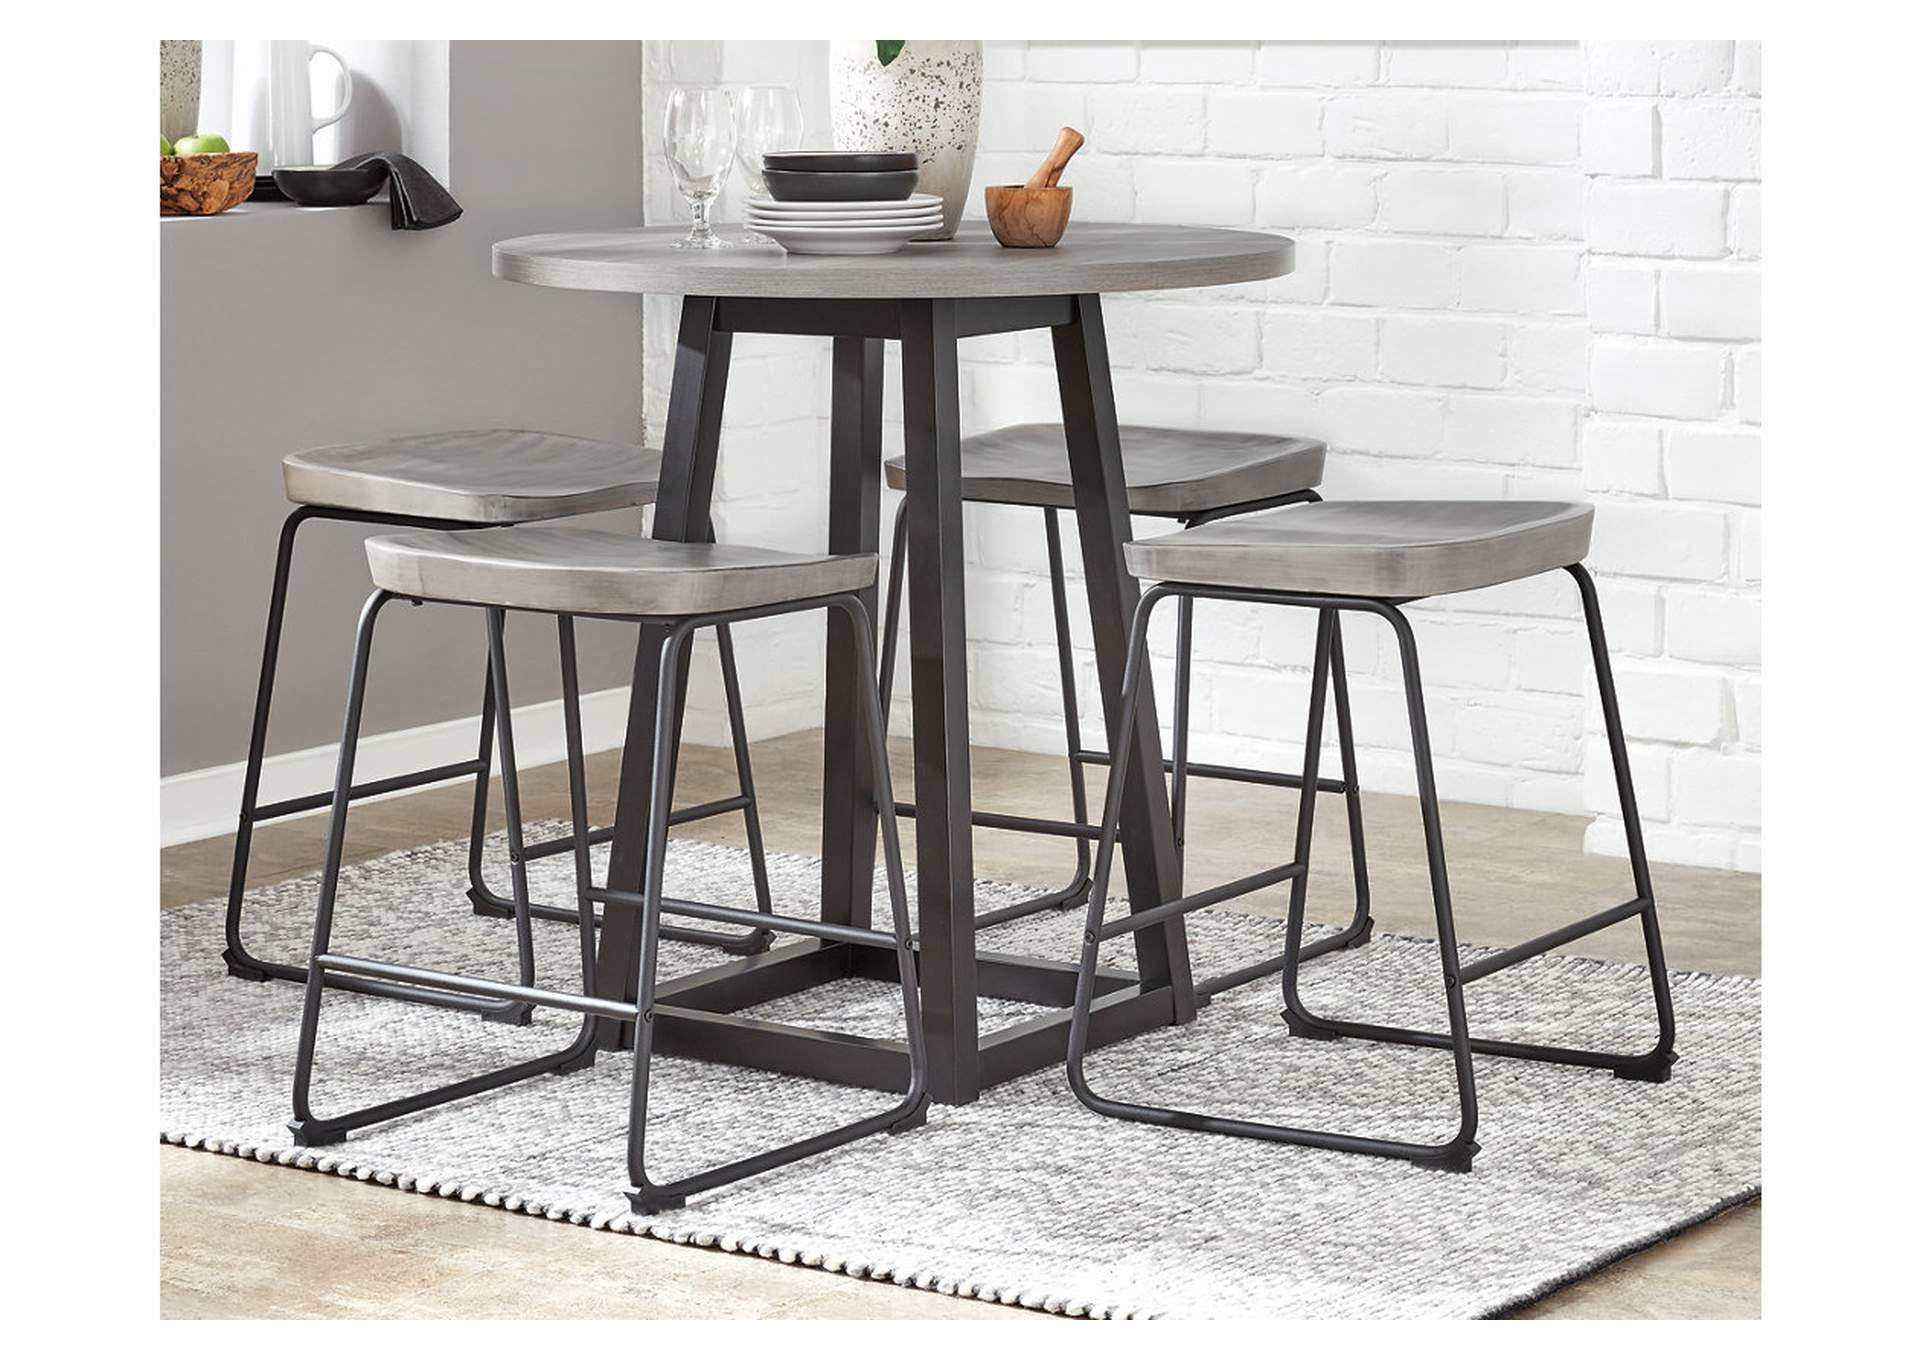 Showdell Counter Height Dining Room Table,Signature Design By Ashley